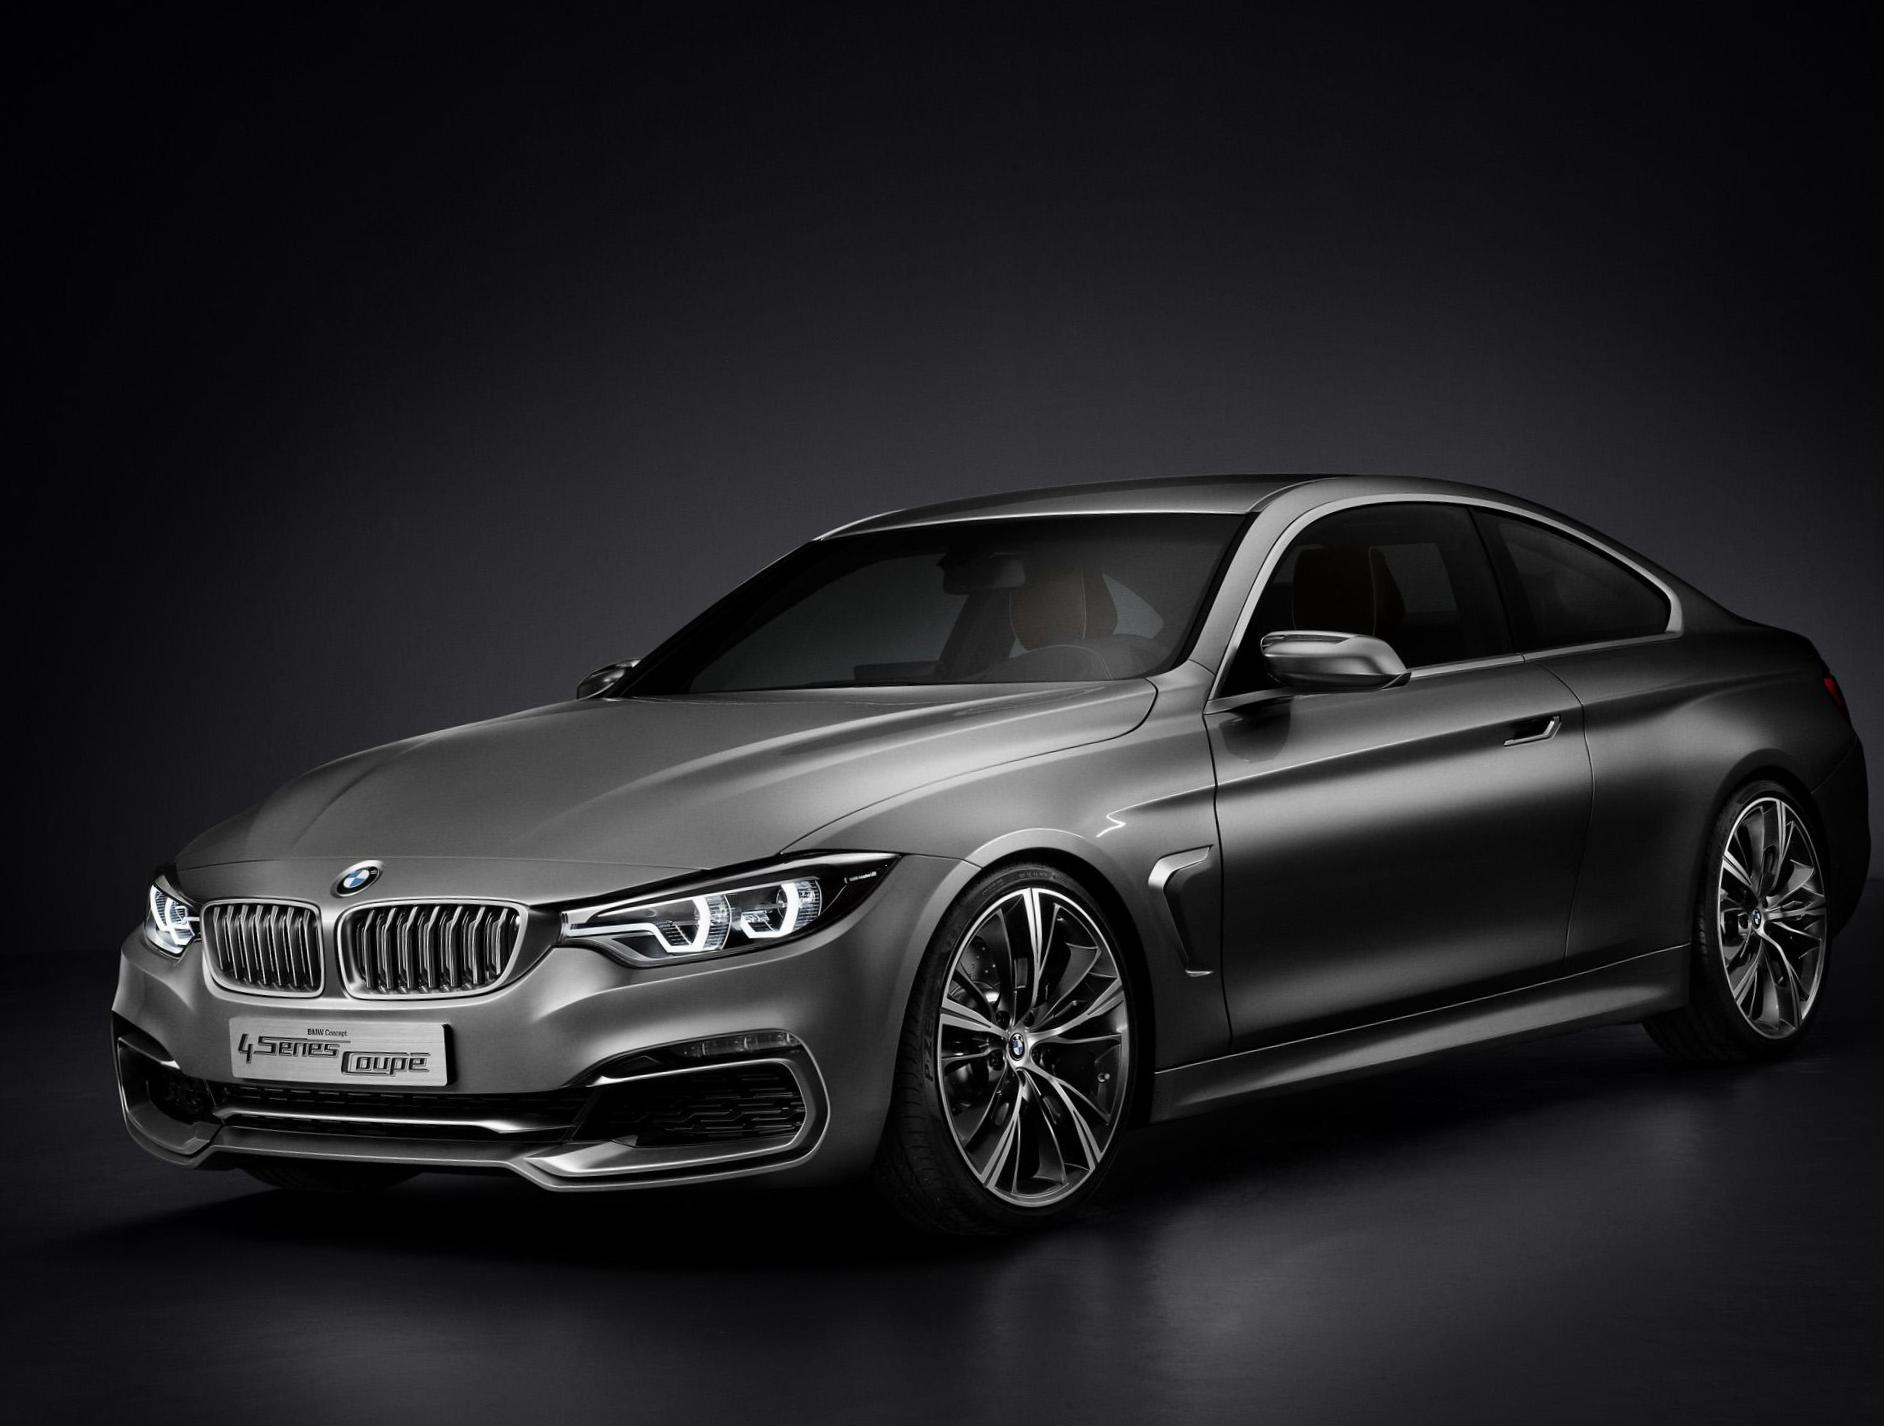 BMW 4 Series Coupe (F32) configuration 2012